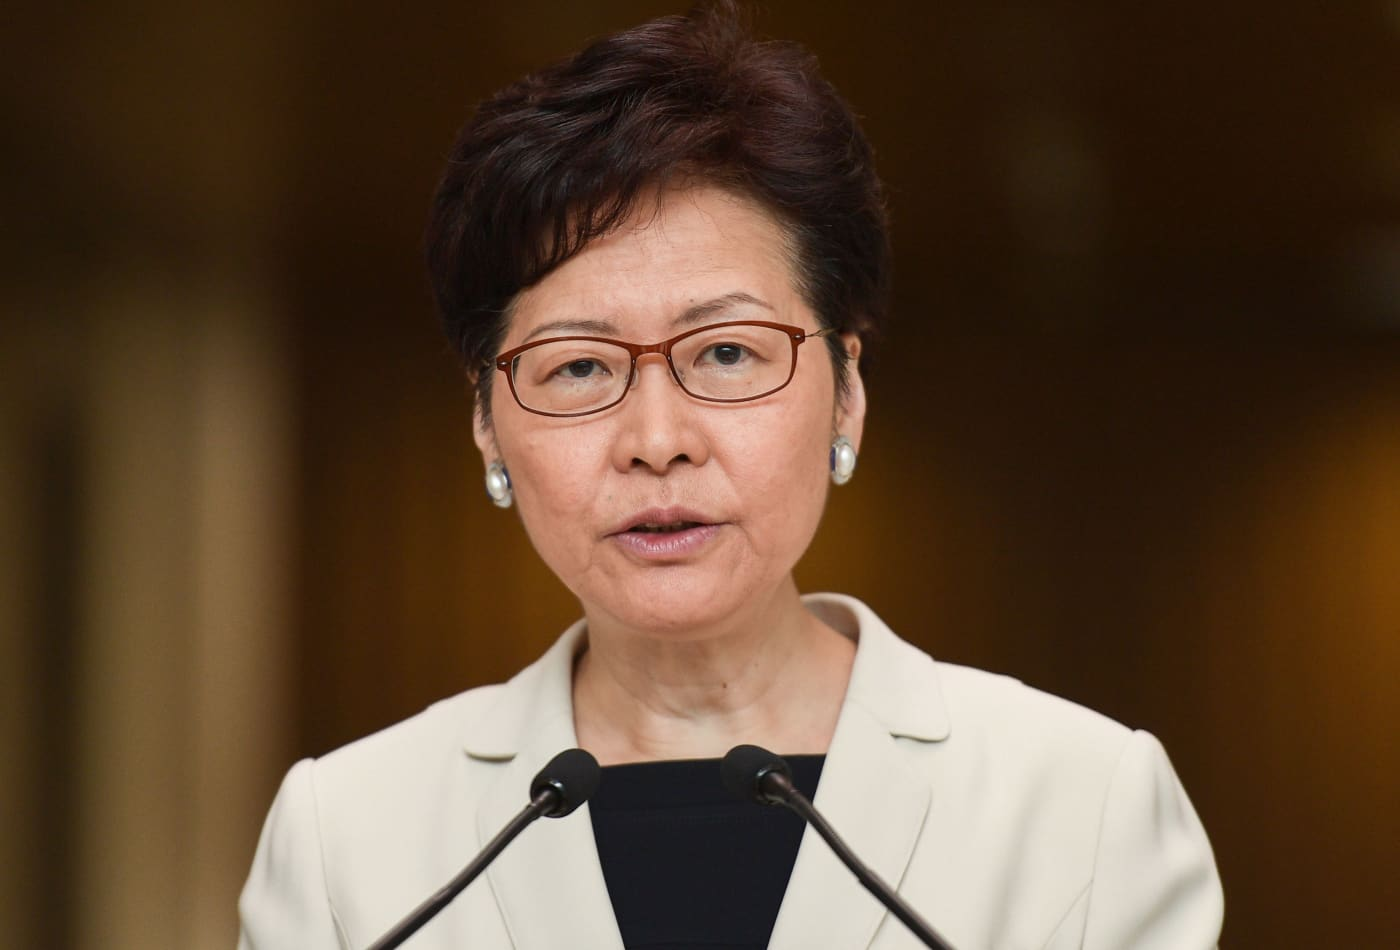 Hong Kong leader Carrie Lam says she's 'very disappointed' by rating downgrade